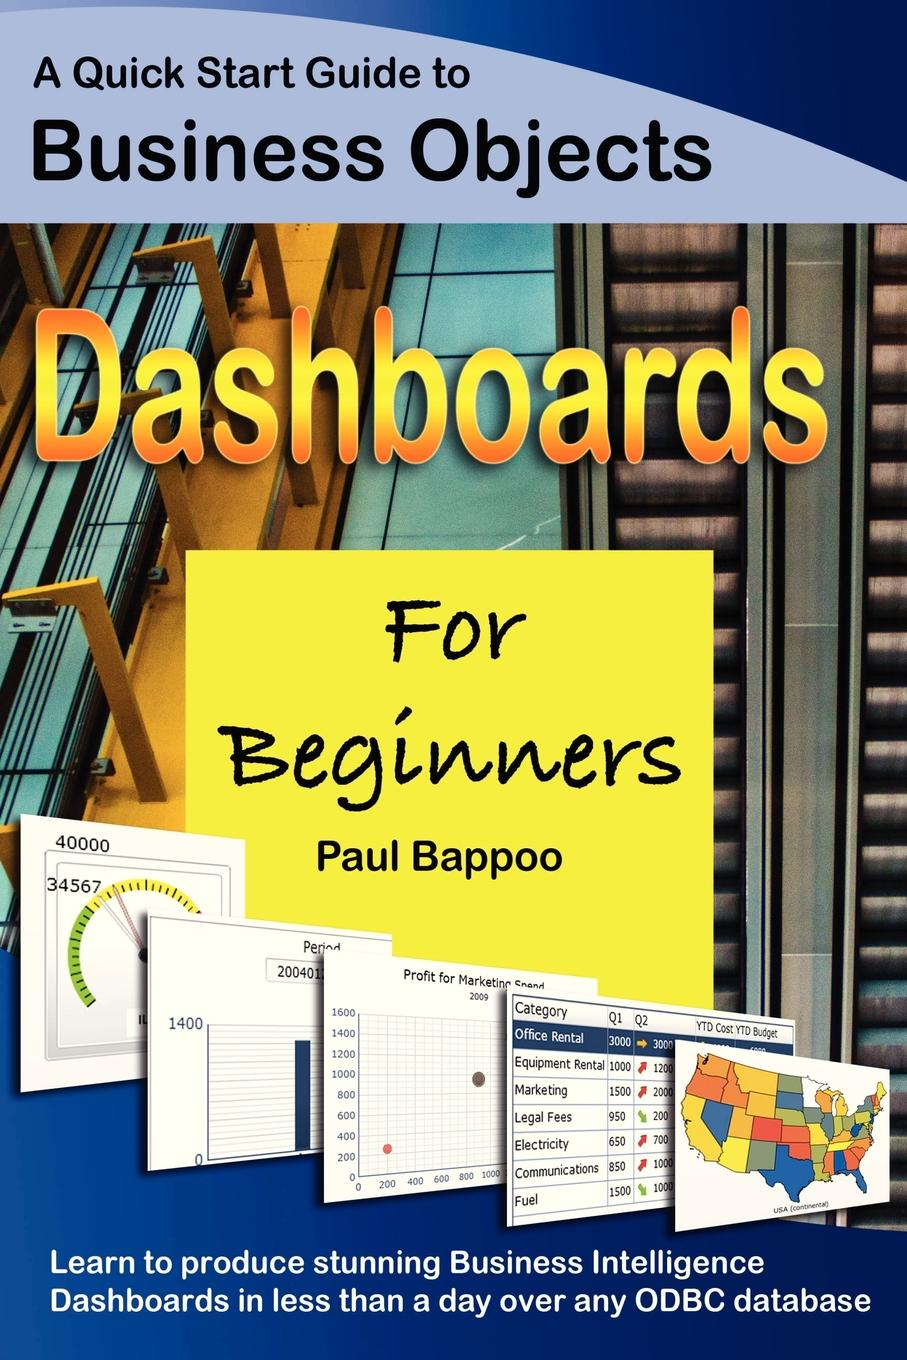 Business Objects Dashboards for Beginners Learn SAP Business Objects Dashboards the quick and easy way! This...